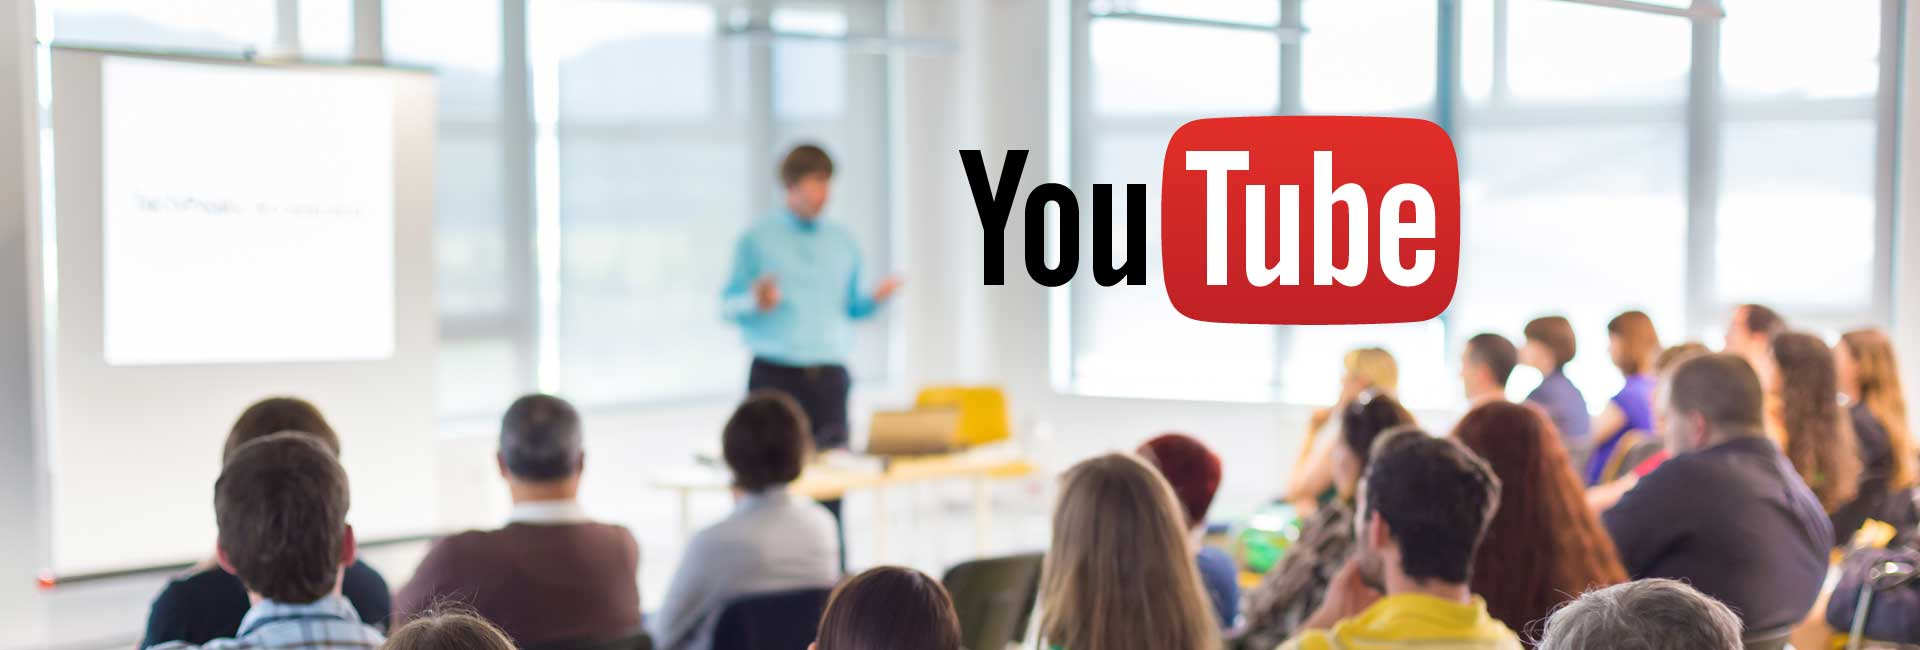 youtube webcast company uk streaming to youtube 360 live events filming webcasting to youtube